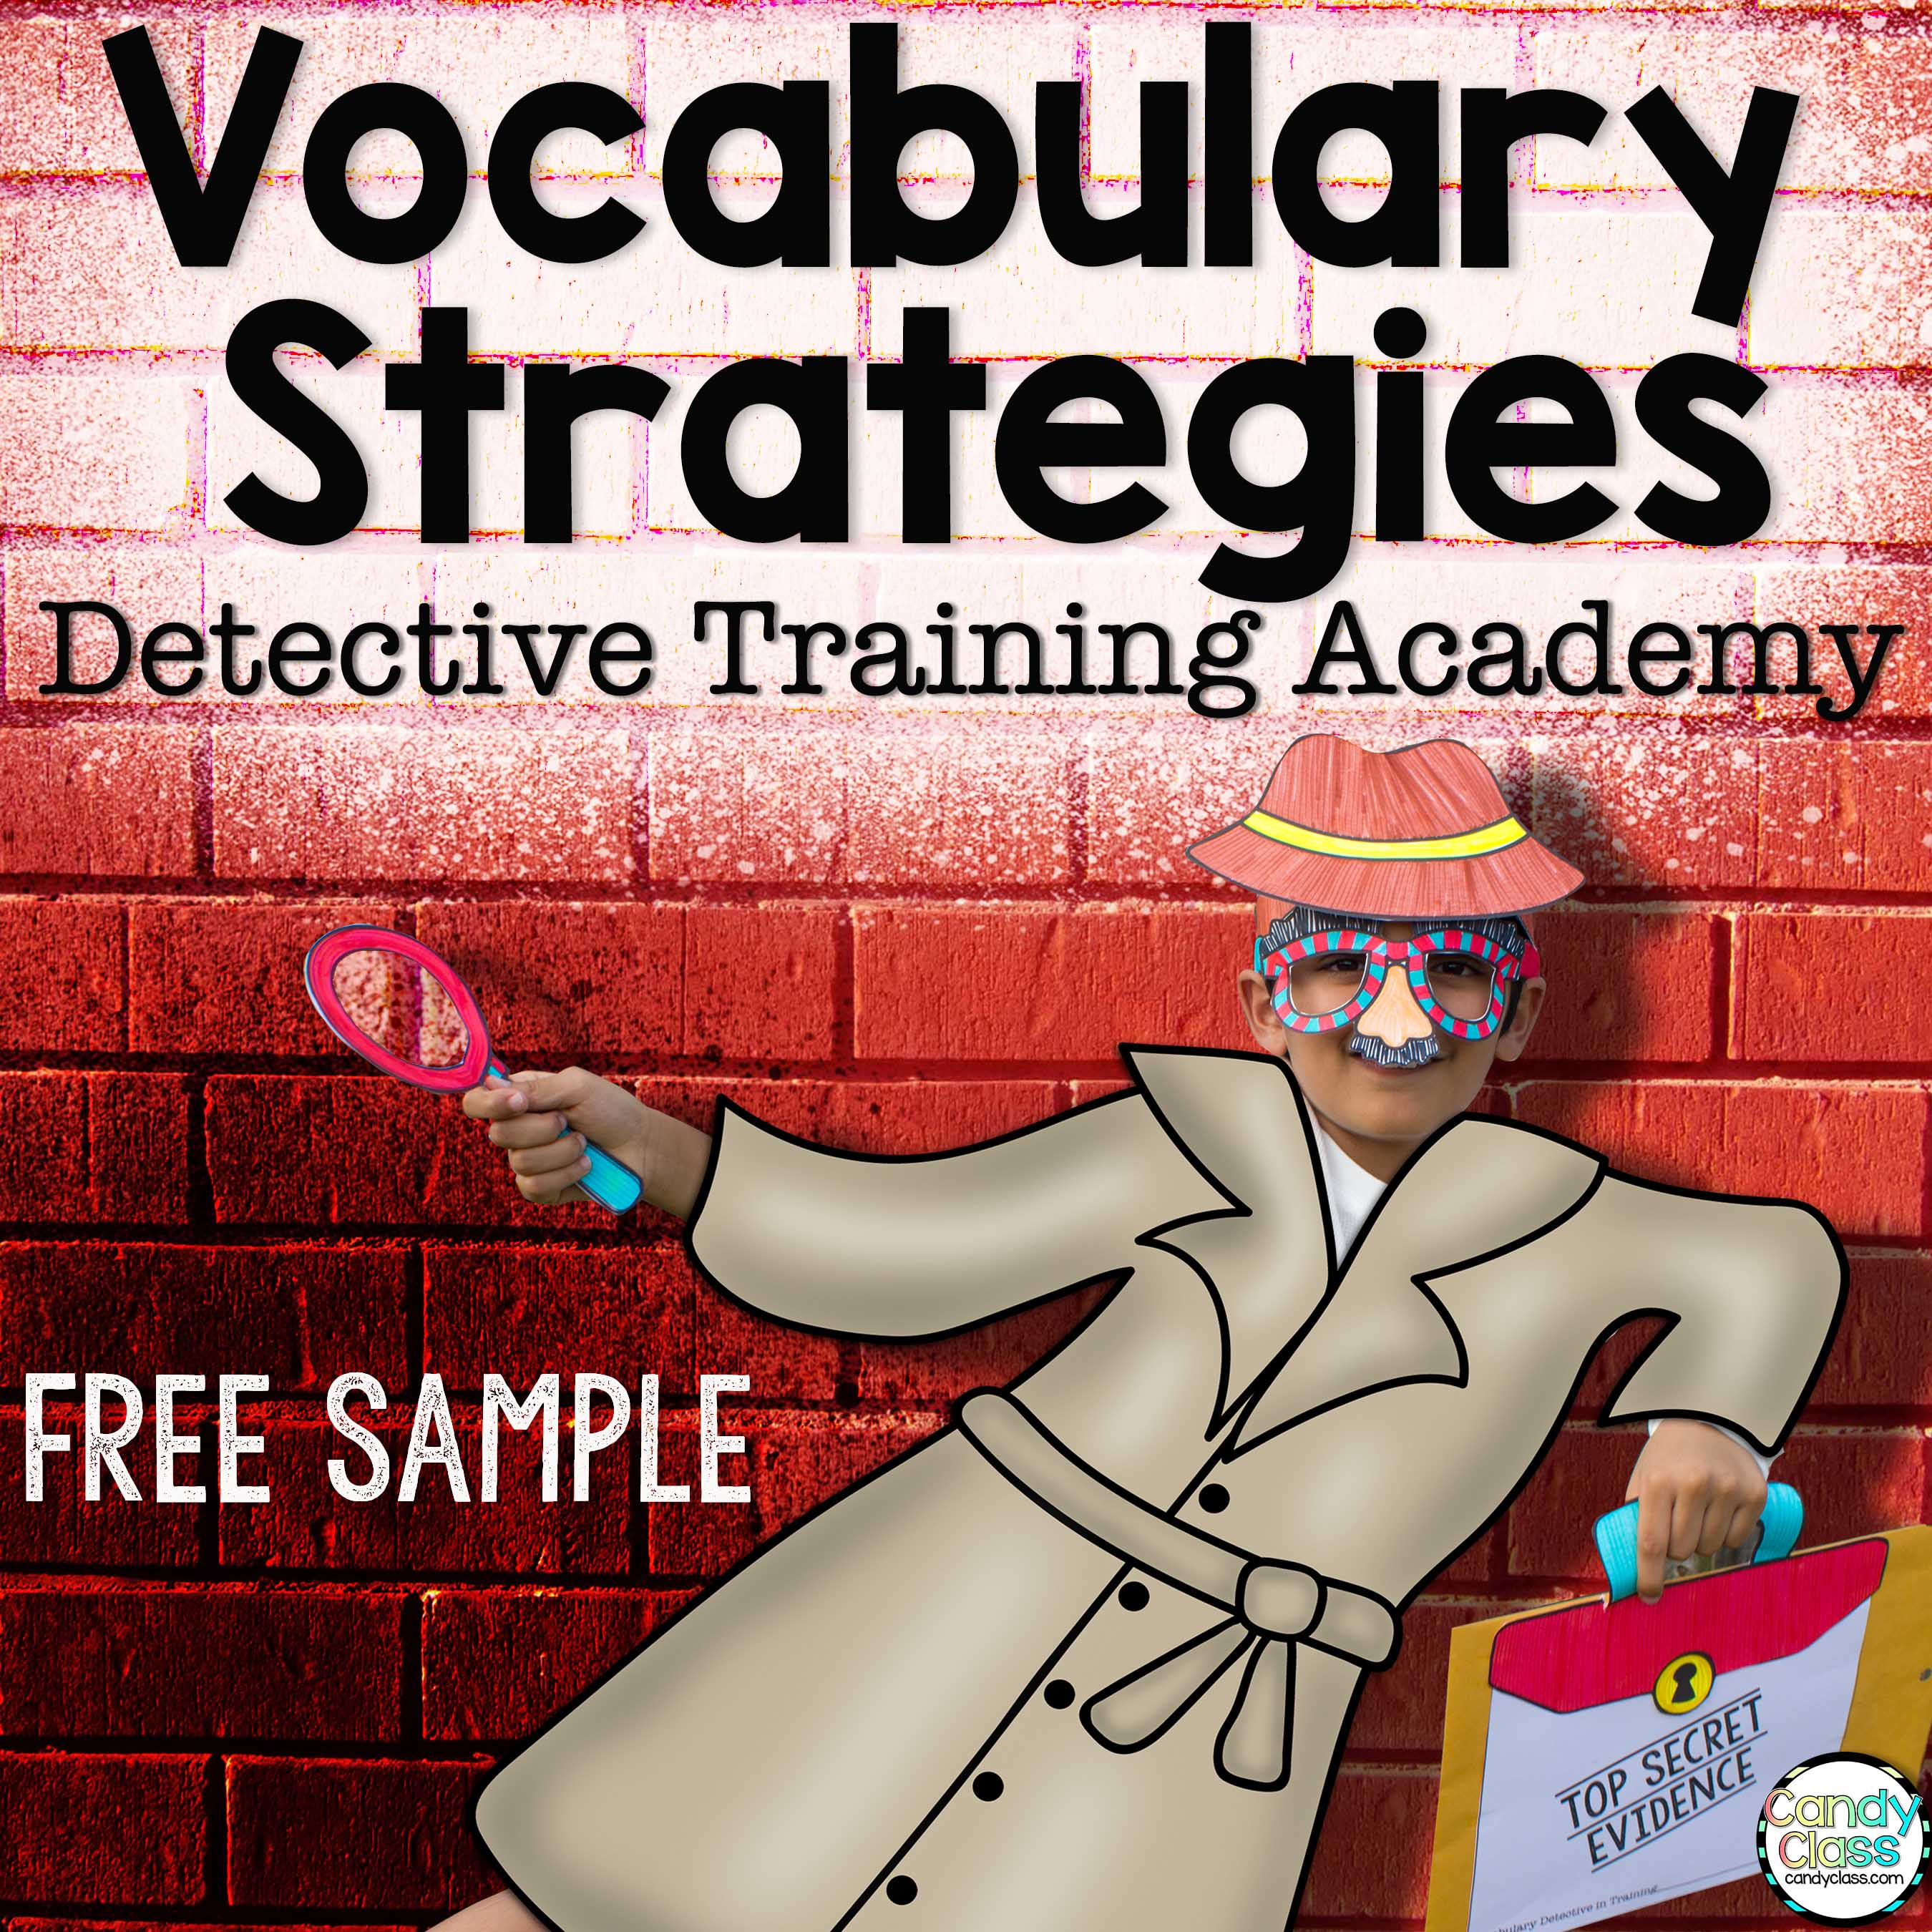 Vocabulary Strategies Free Sample